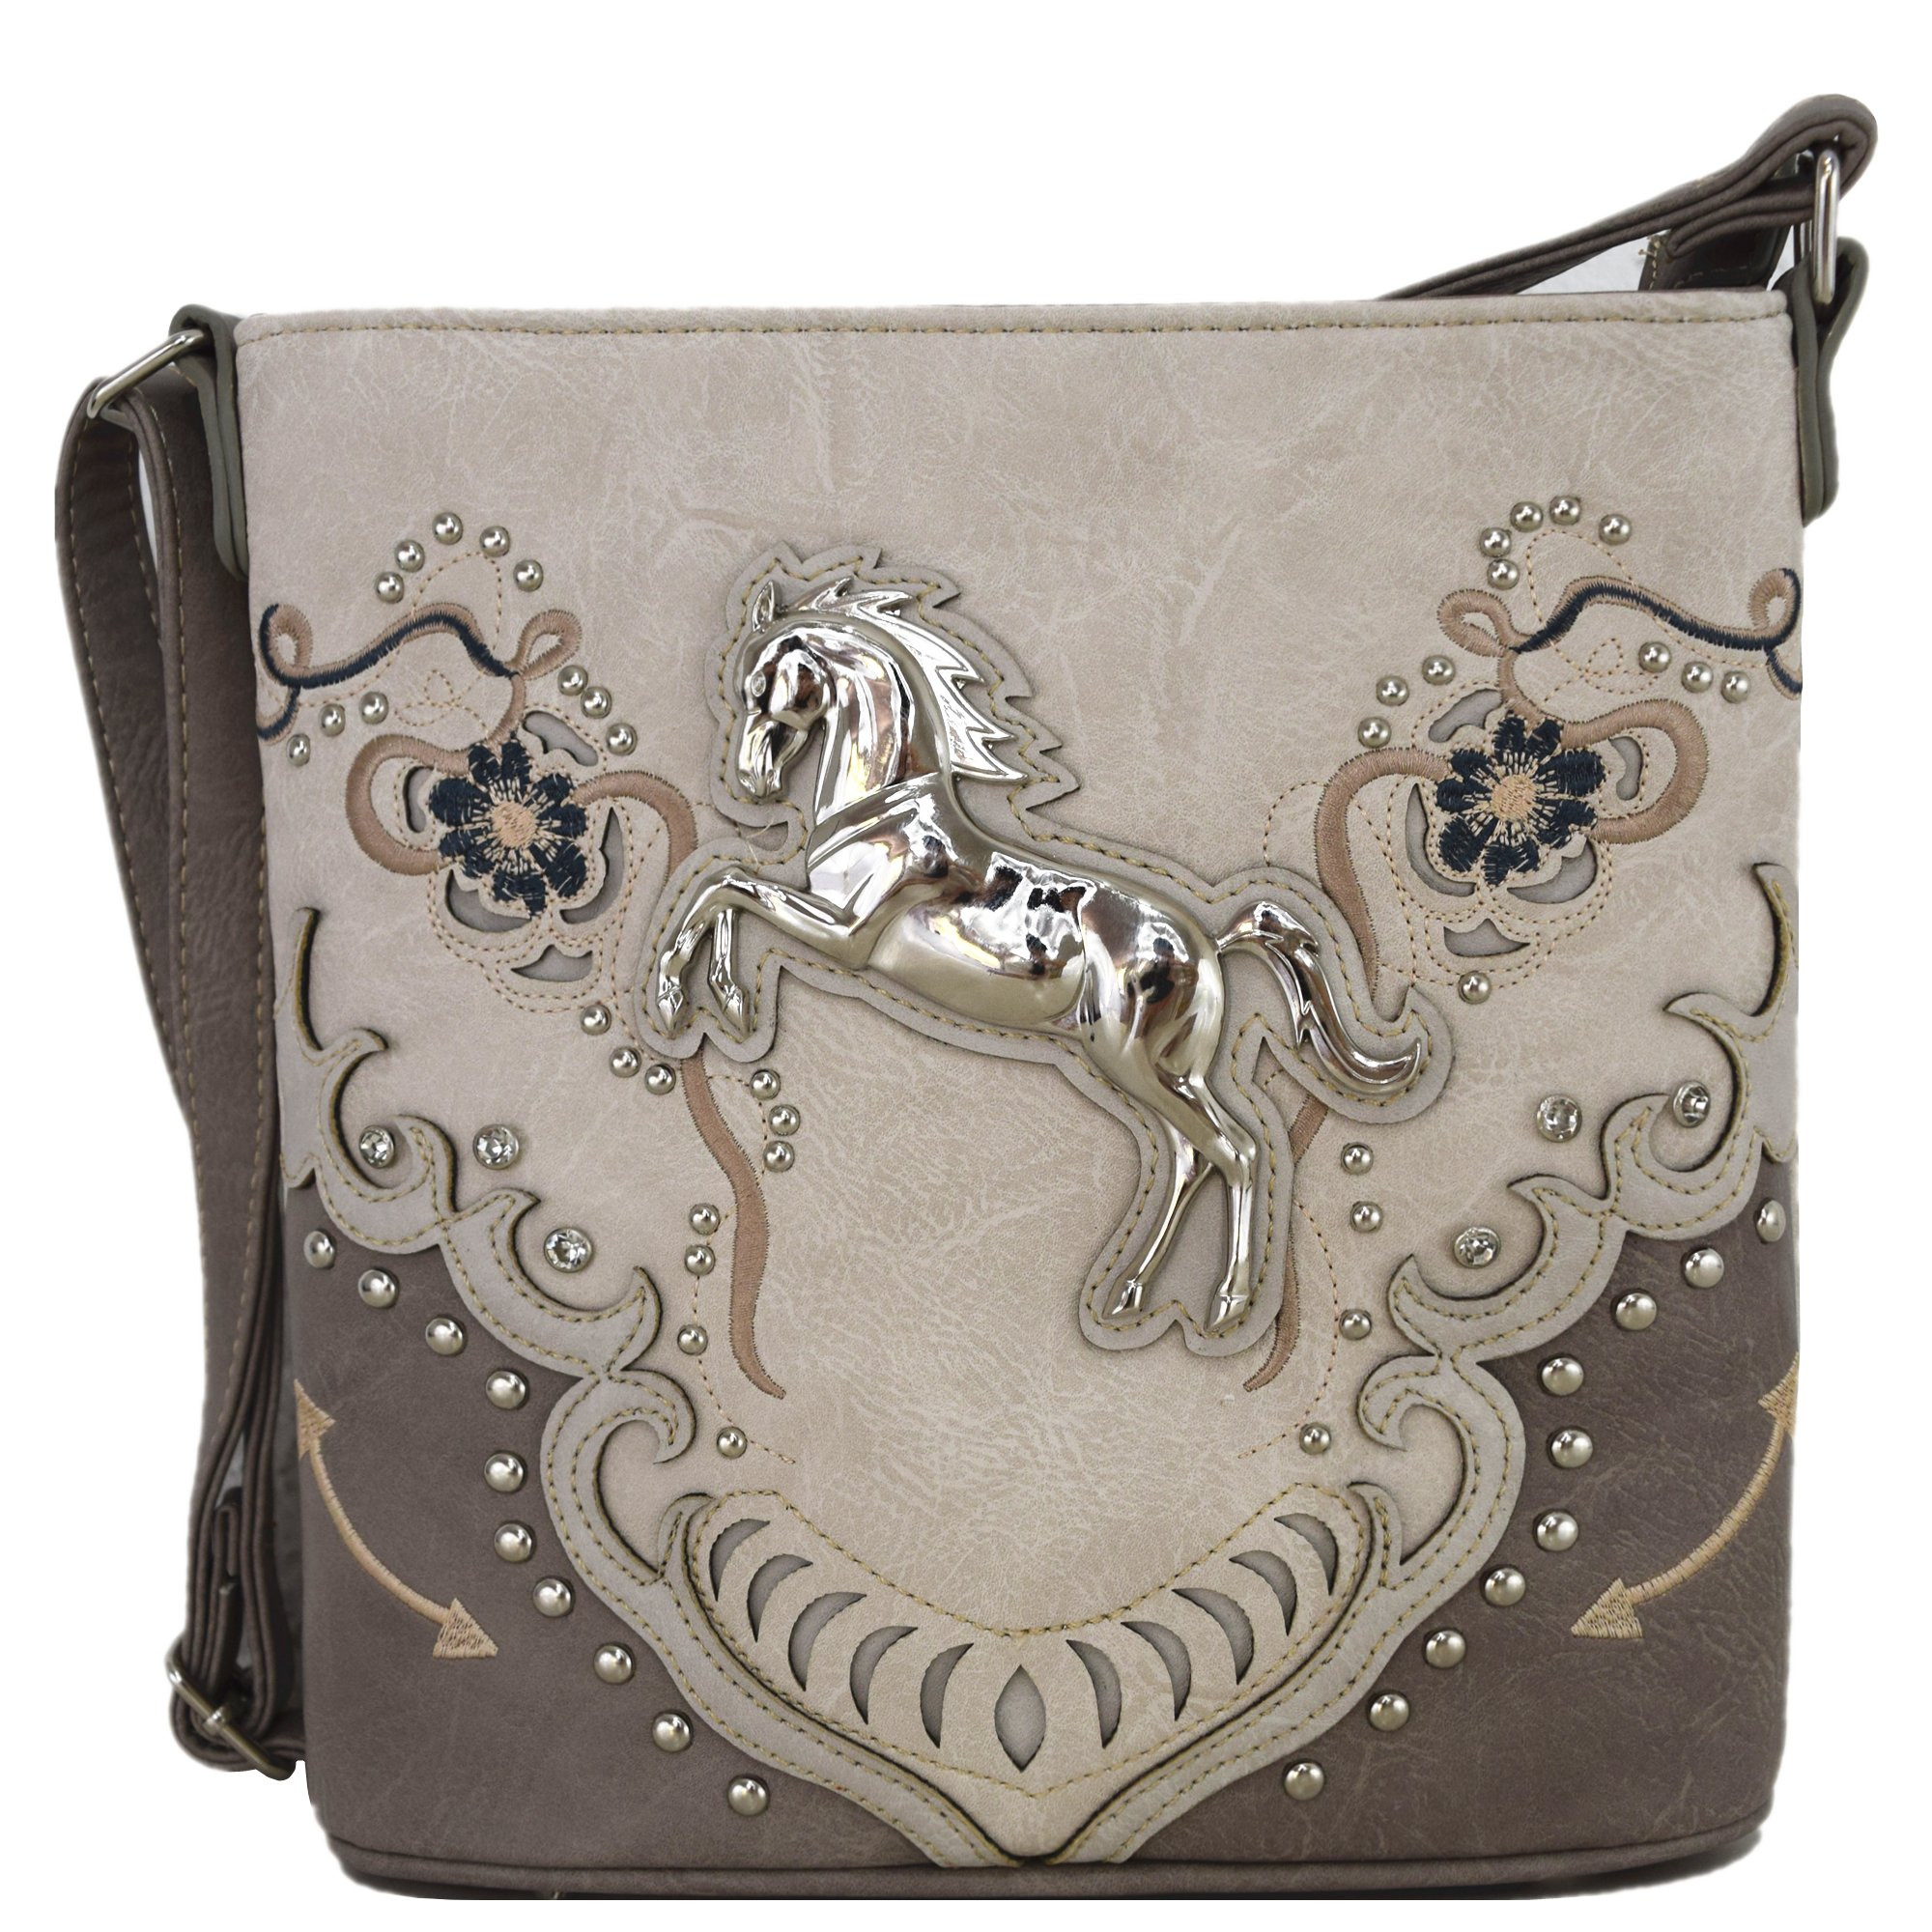 Western Cowgirl Style Horse Cross Body Handbags Concealed Carry Purses Country Women Single Shoulder Bag (2 Gray)